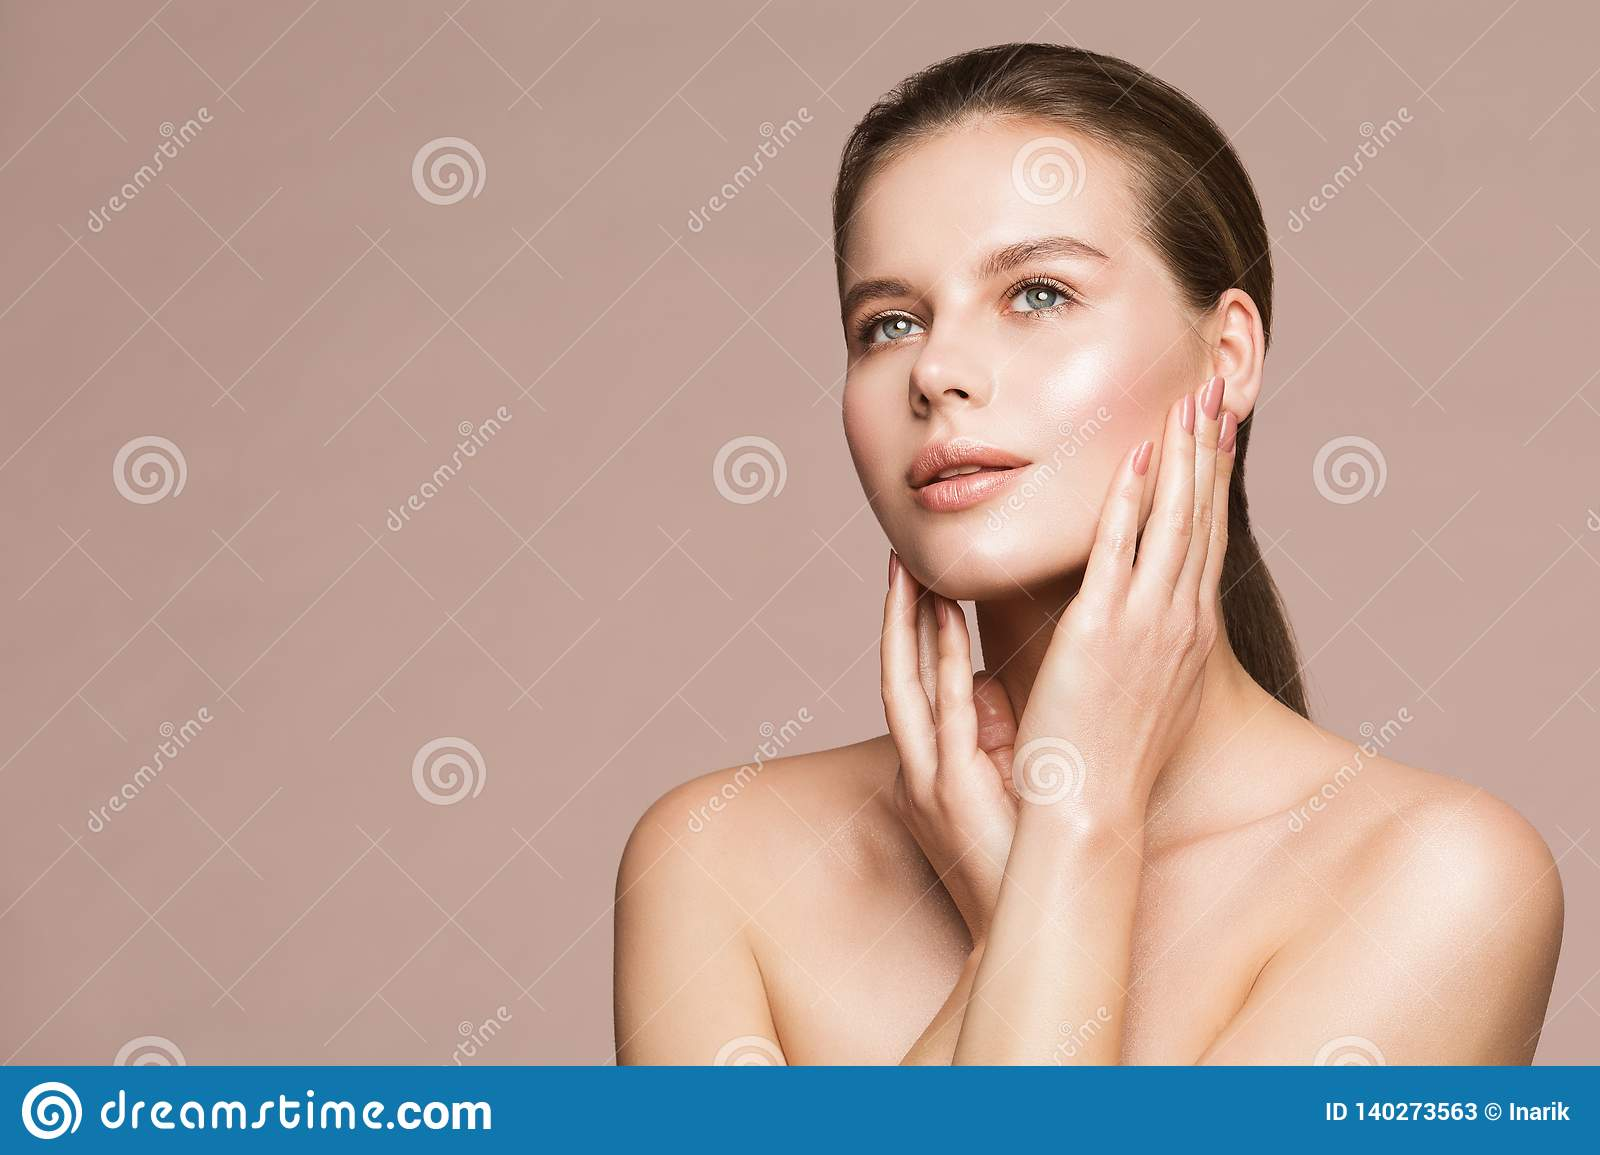 Woman Beauty Portrait, Model Touching Face, Beautiful Girl Makeup and Nails Treatment